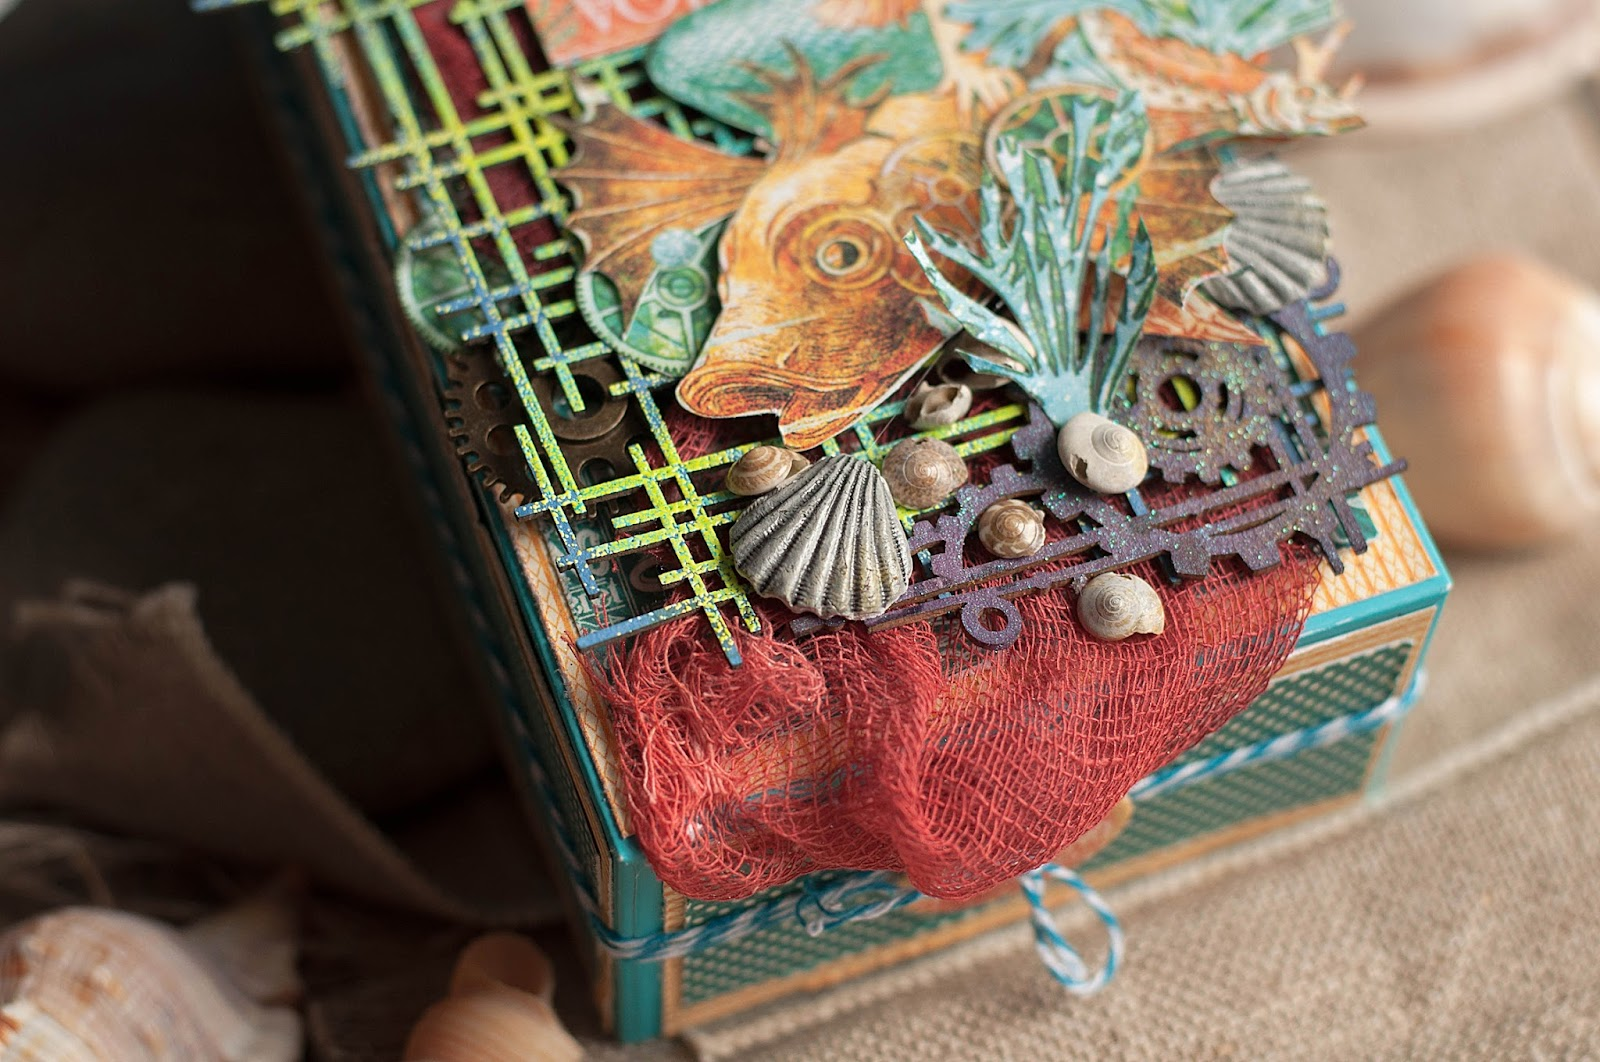 Box-Voyage Beneath the Sea-Graphic 45- by Lena Astafeva-15.jpg